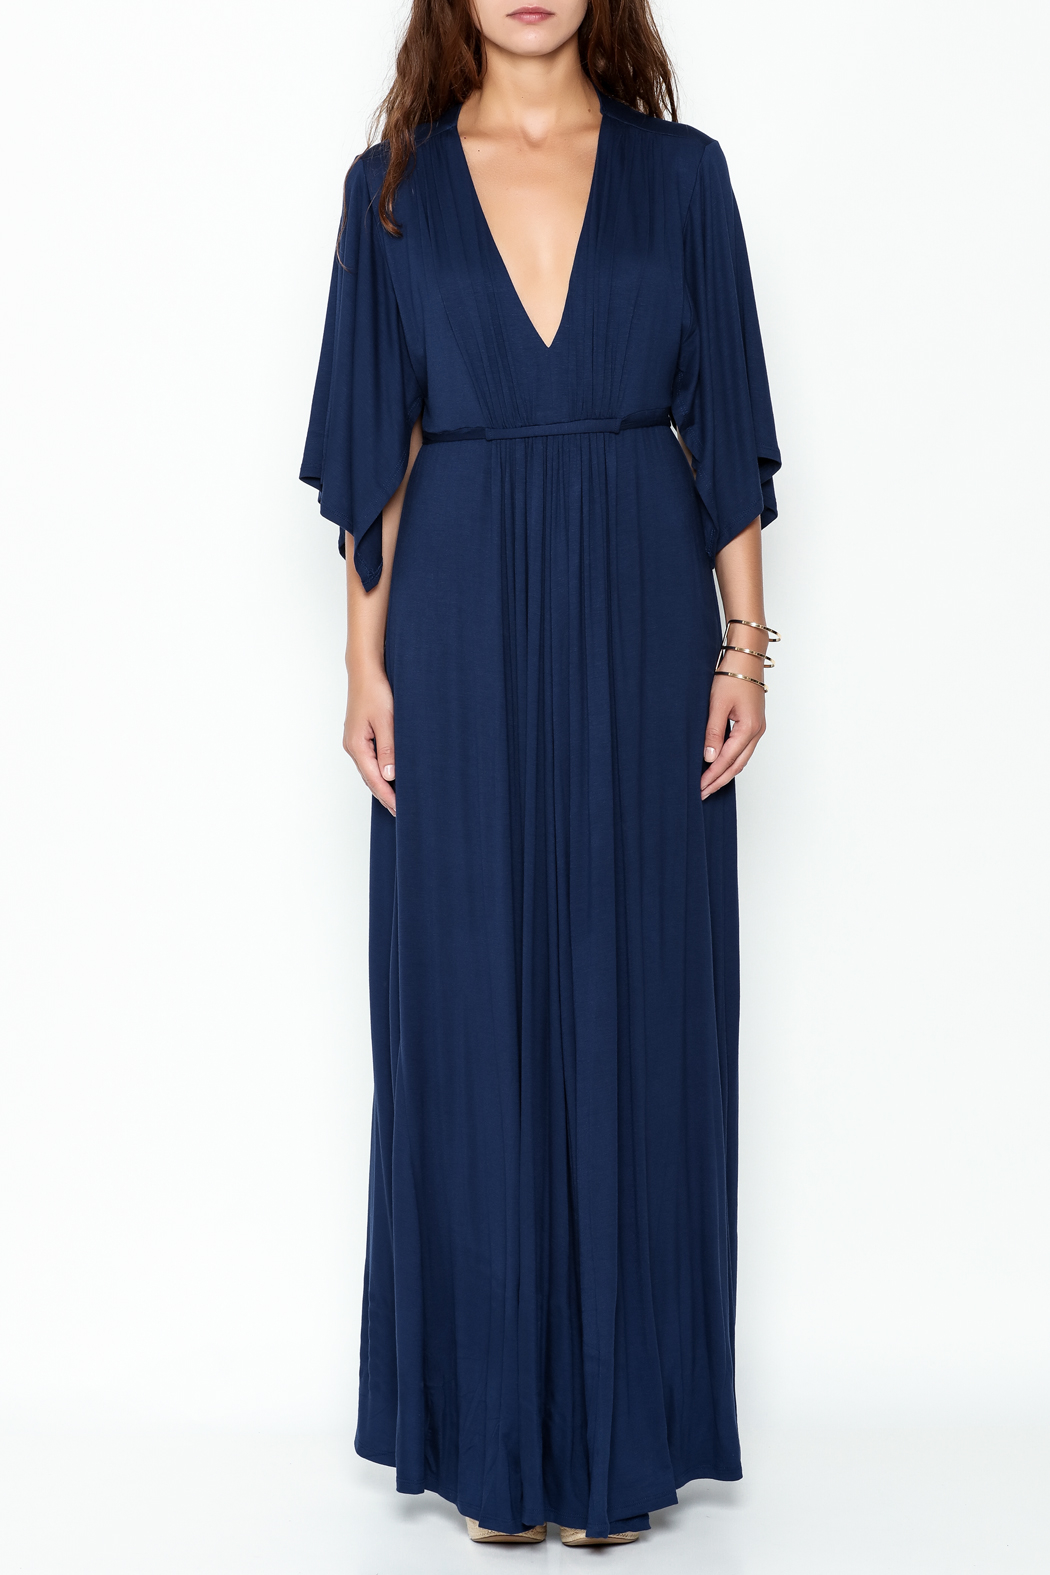 Lila Ila Mackenzie Maxi Dress - Front Full Image